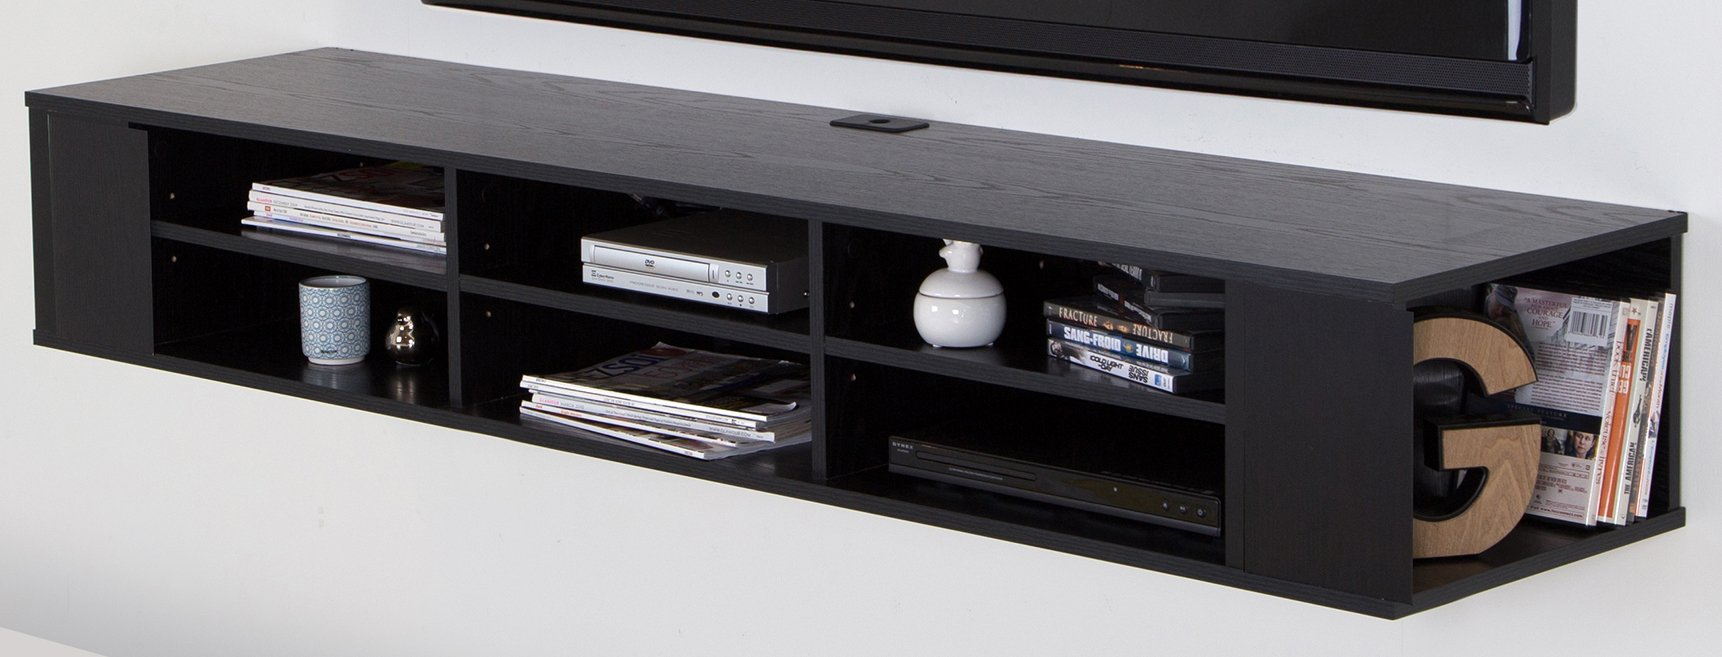 City Life Wall Mounted Media Console - 66'' Wide - Extra Storage - Black Oak - By South Shore by South Shore